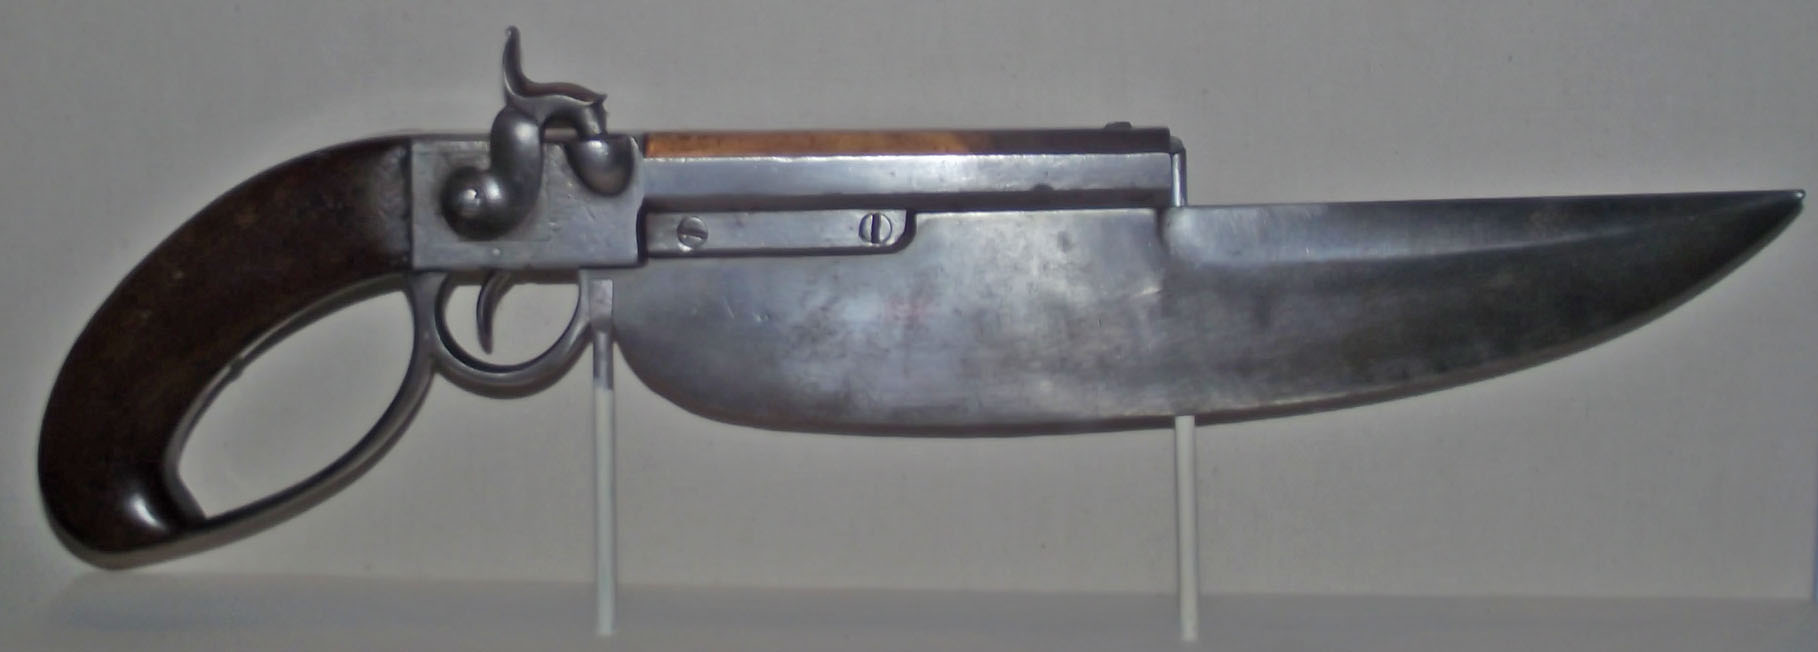 Elgin_cutlass_pistol.jpg